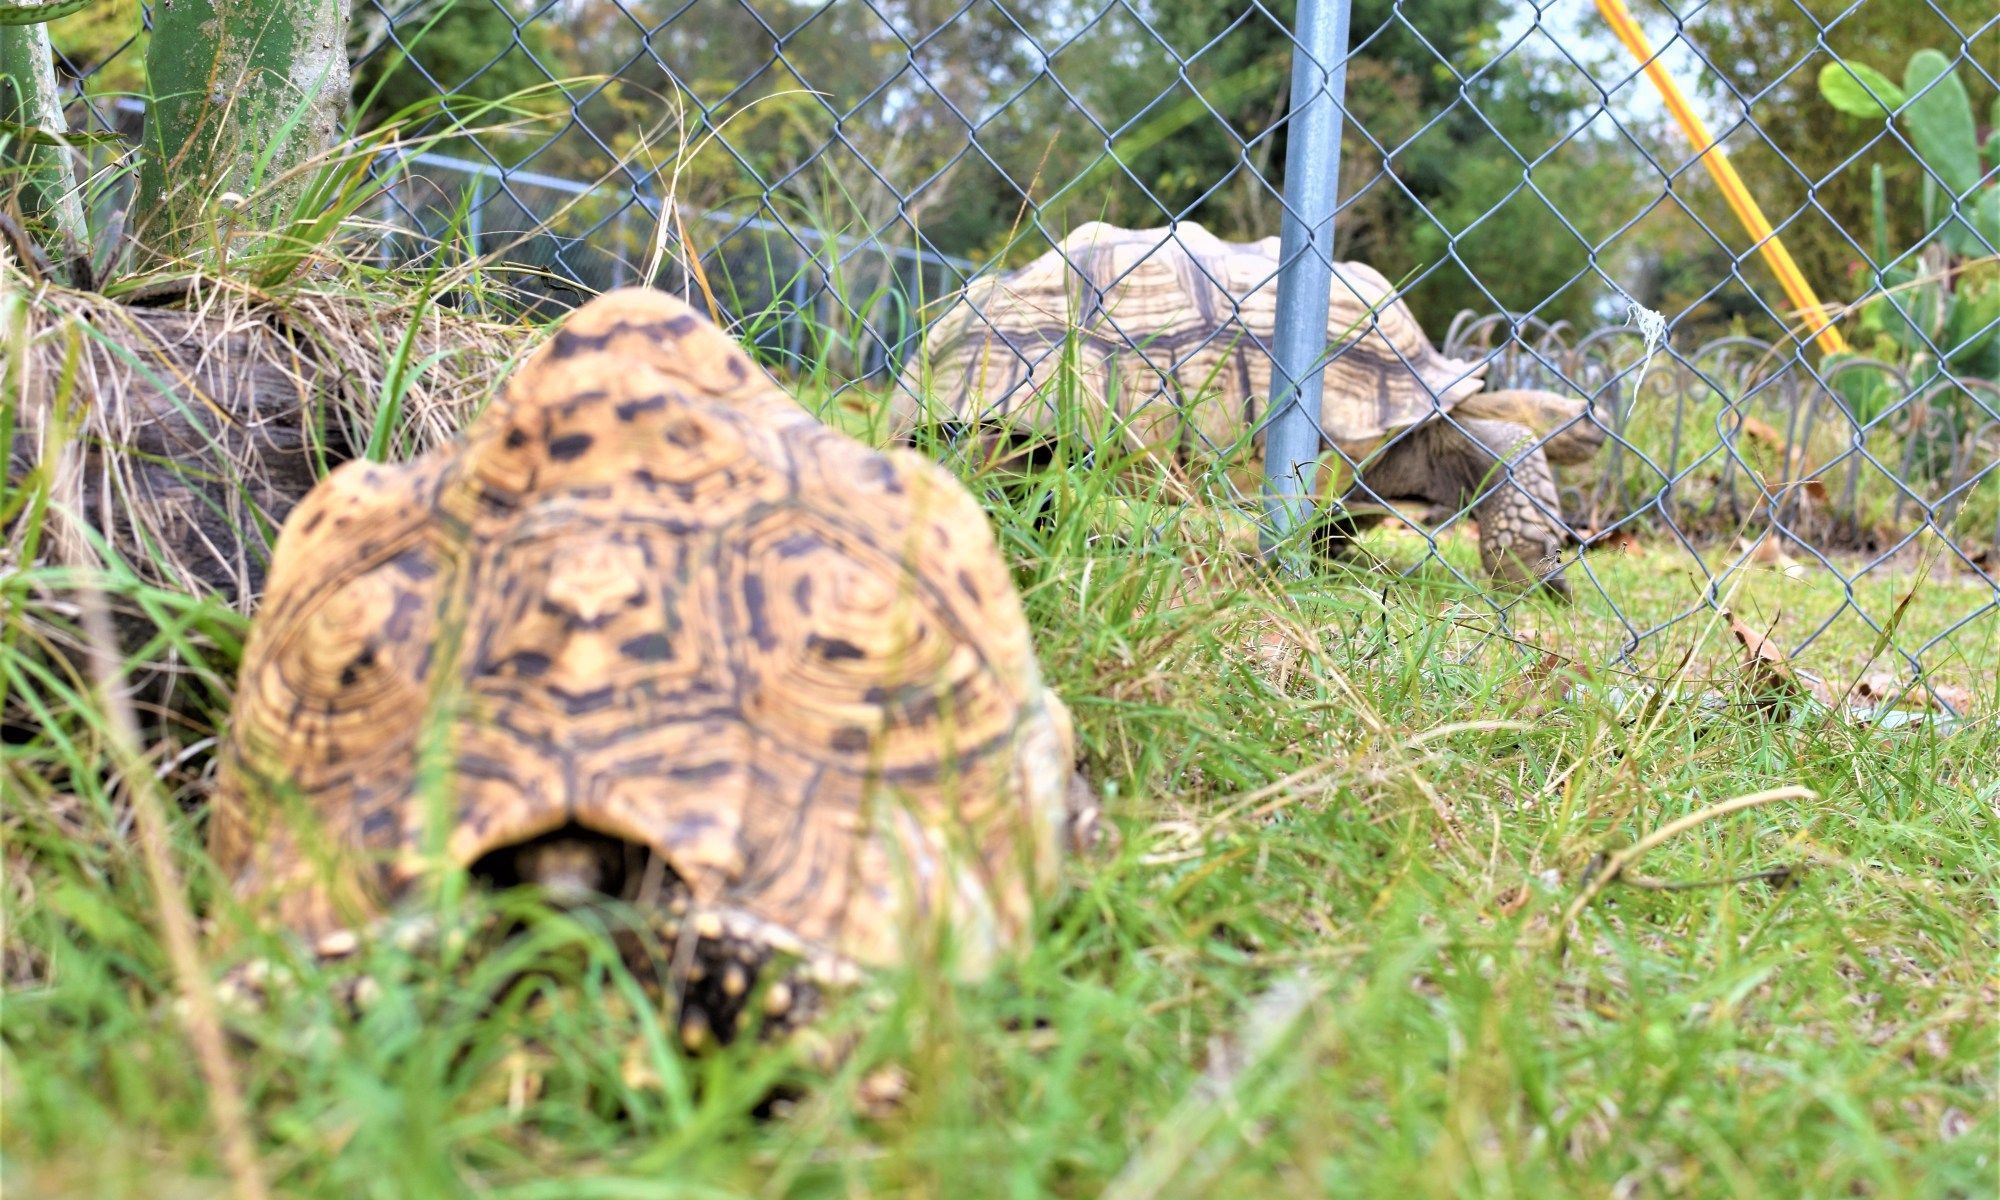 Tortoises Need Grass Flowers Weeds And Hay Before They Need Fruit And Vegetables Crazy Plants Crazy Critters